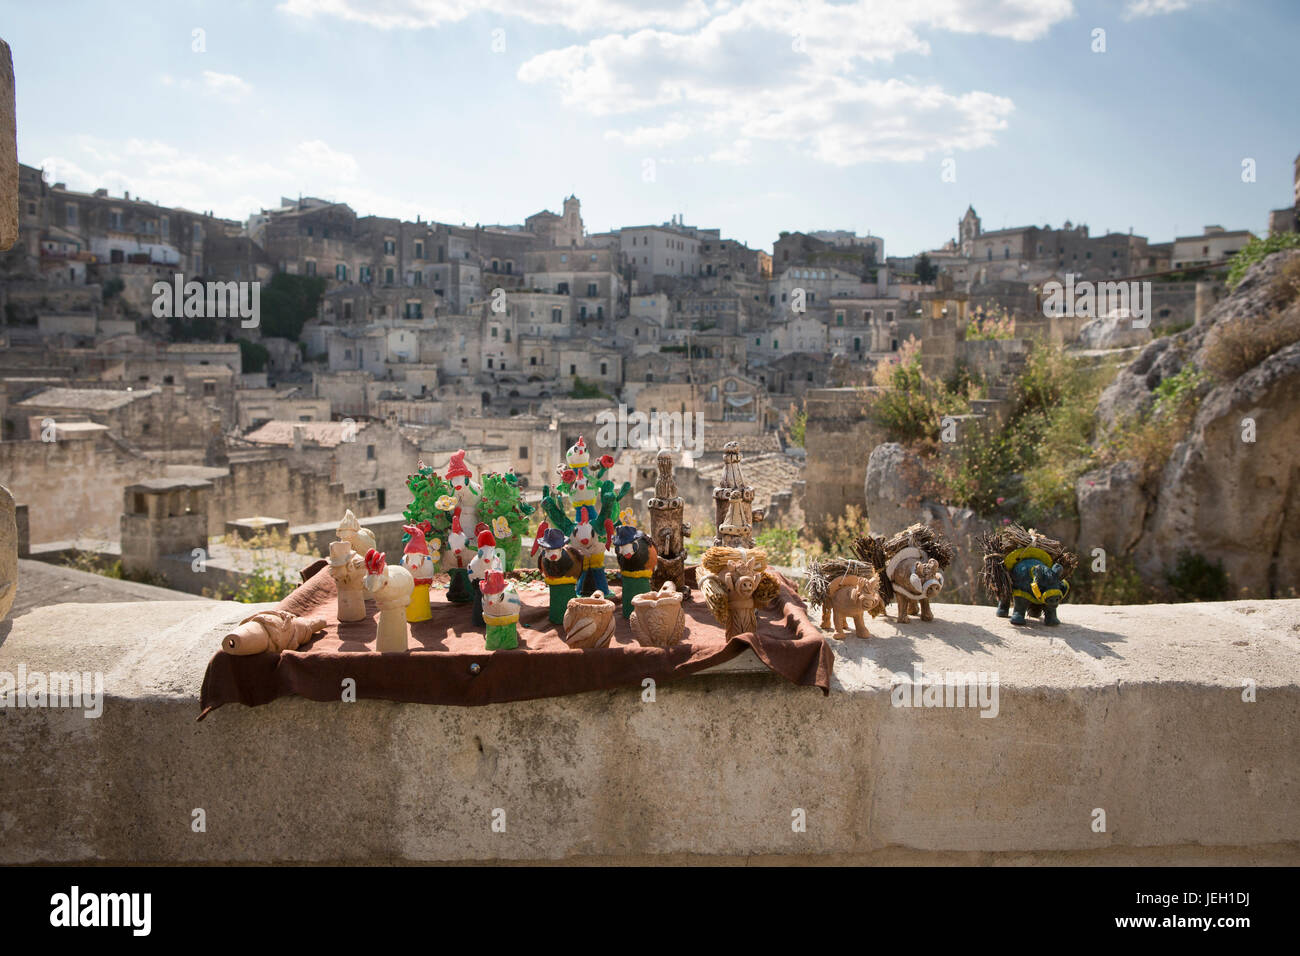 Holiday destination, Matera, Citta' dei sassi, Basilicata, Italy,  World Heritage Site by UNESCO since 1993 Stock Photo